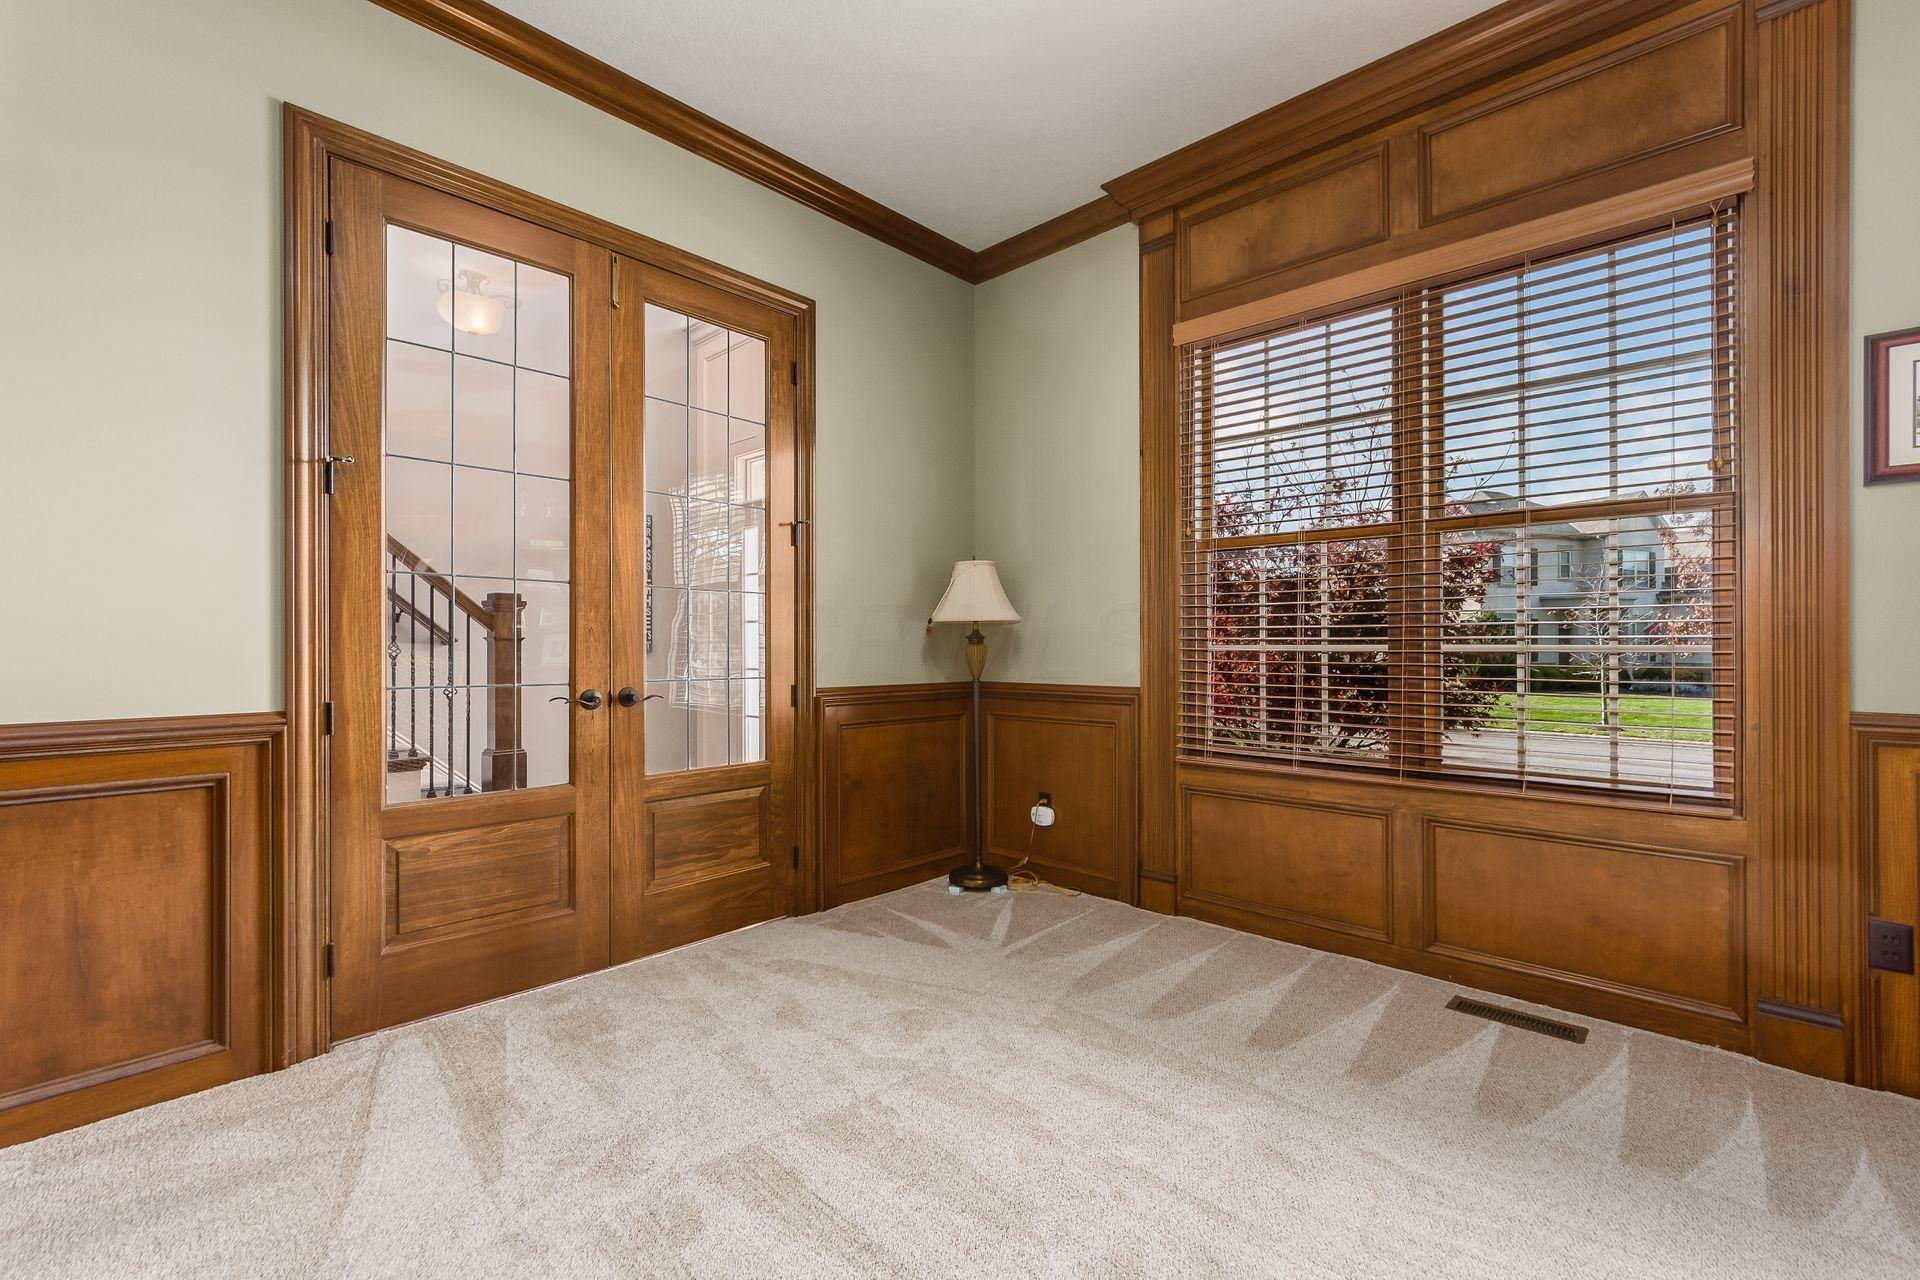 8975 Shaffer Drive, Powell, Ohio 43065, 5 Bedrooms Bedrooms, ,5 BathroomsBathrooms,Residential,For Sale,Shaffer,220040112